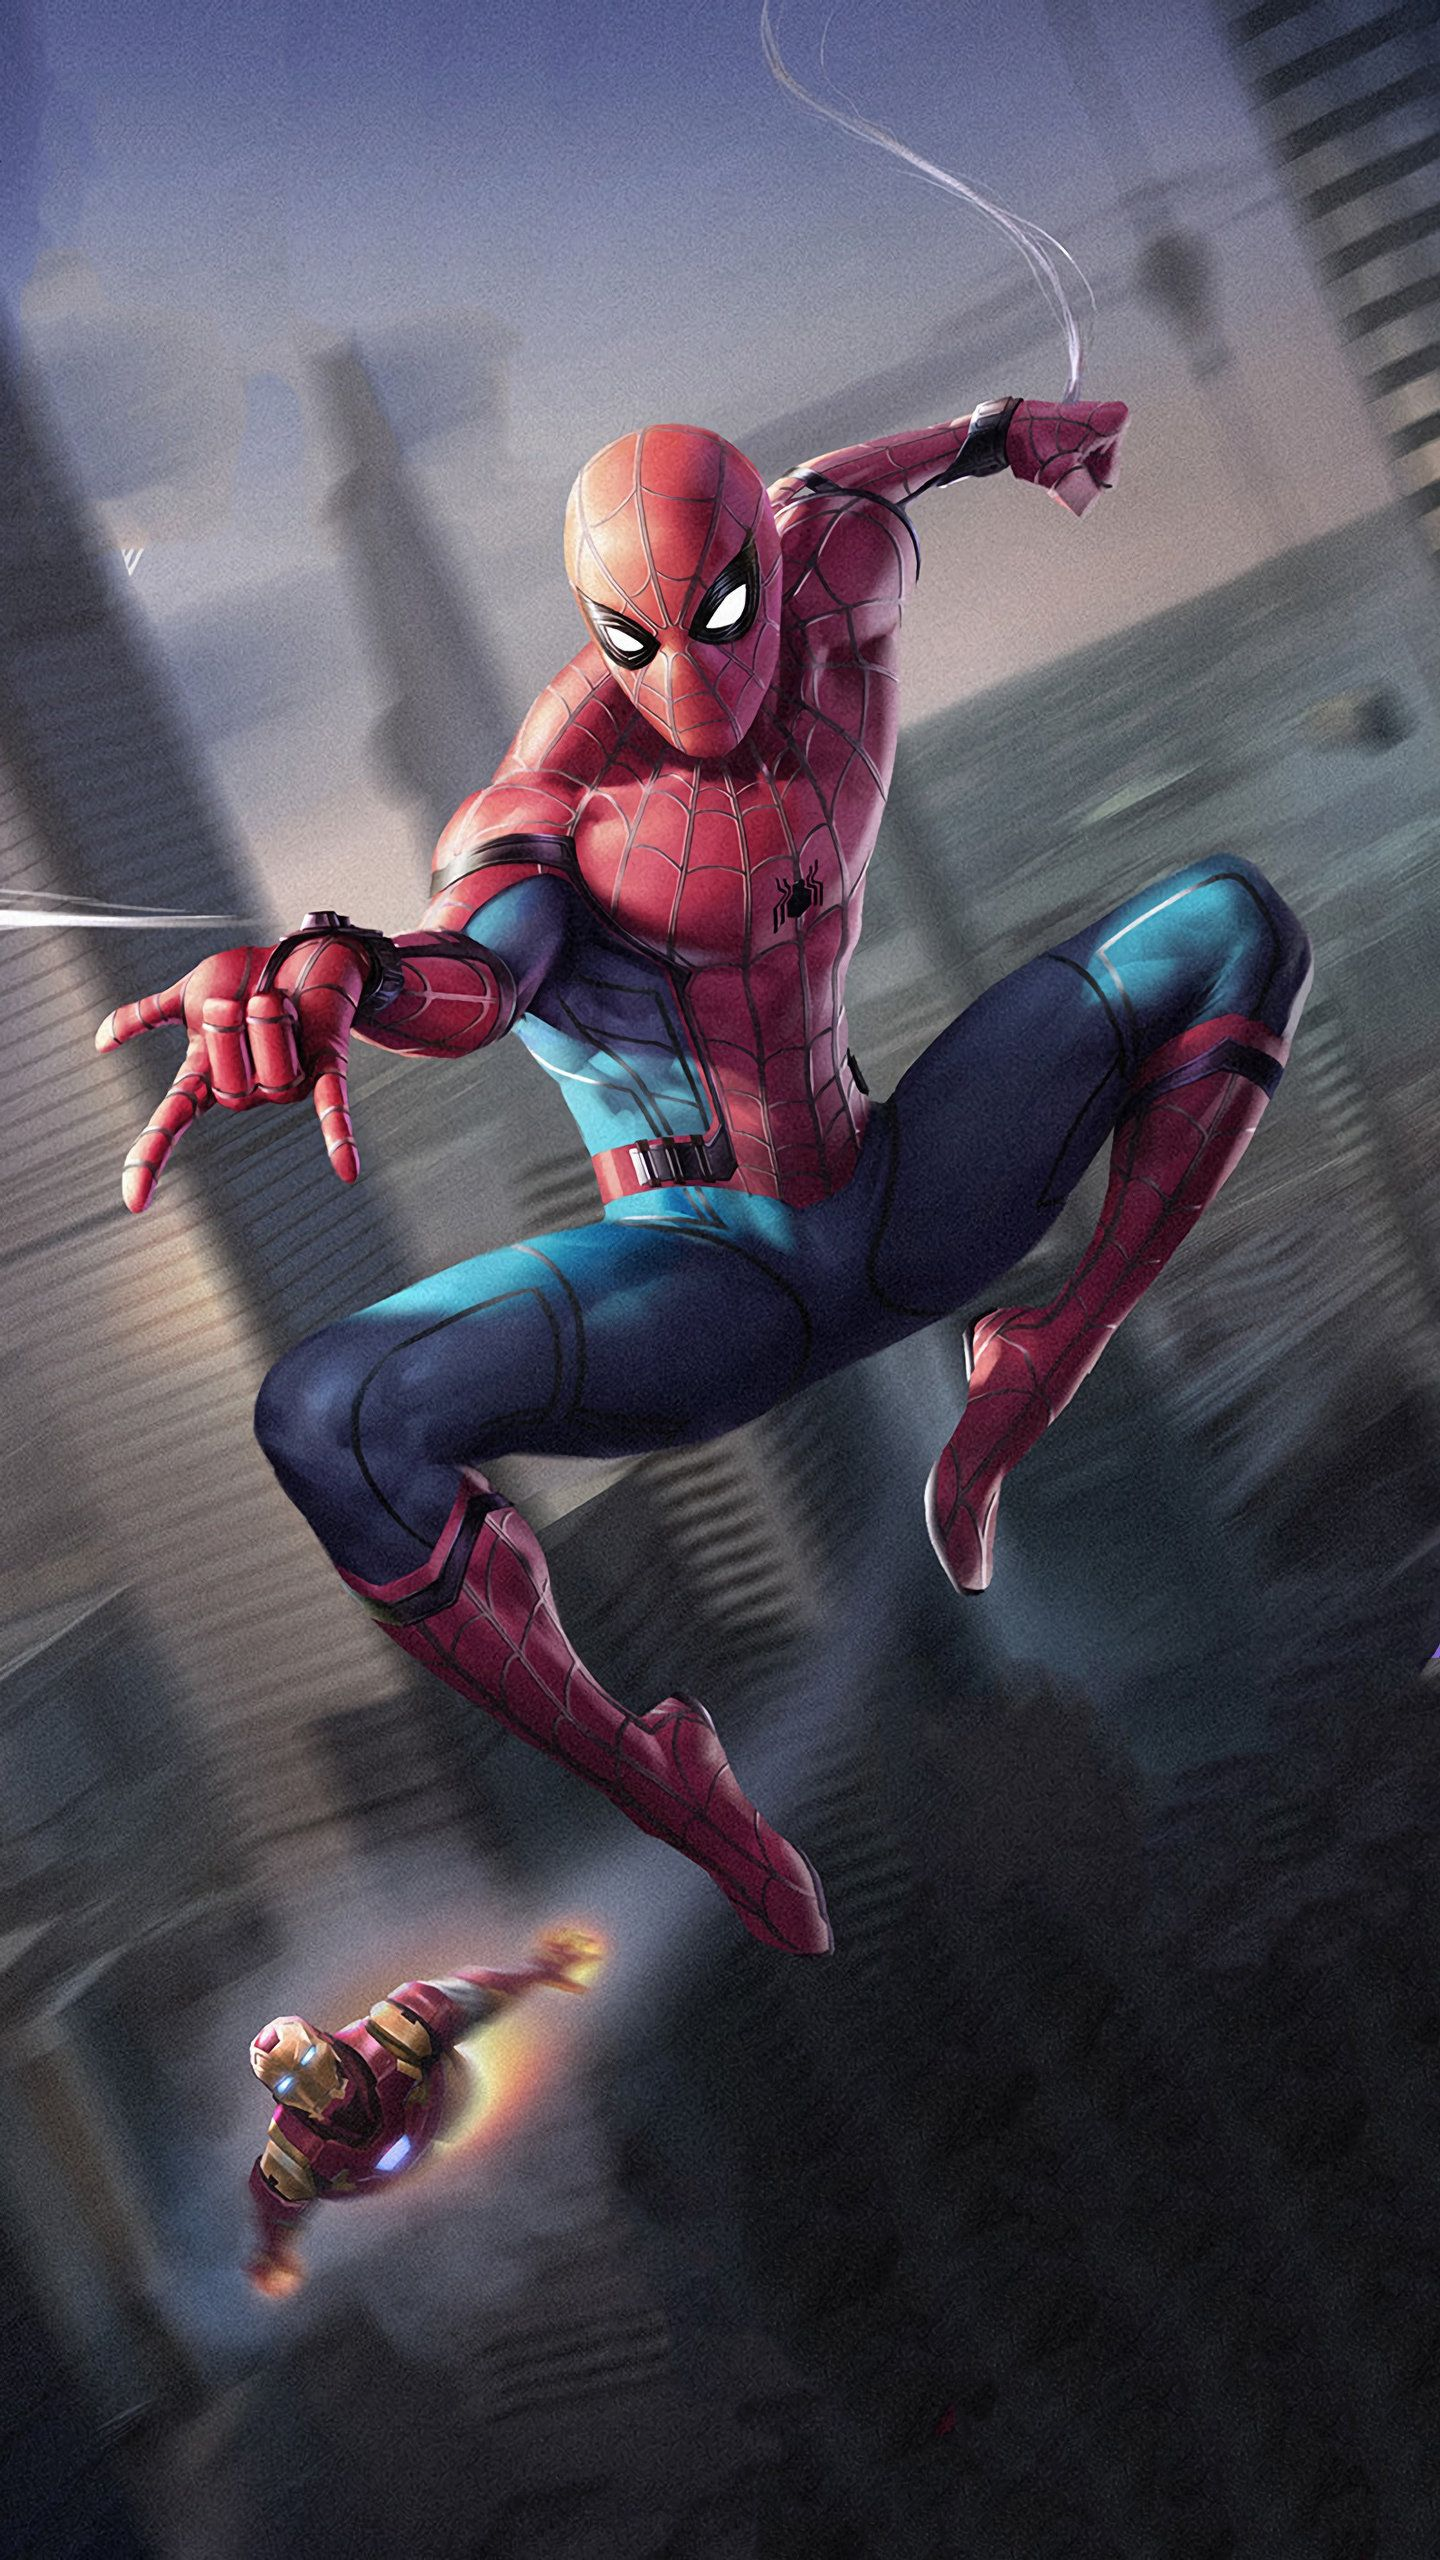 Spiderman Spider Web Hd Superheroes Wallpapers Photos And Pictures Id 43485 Spiderman Spiderman Art Amazing Spiderman